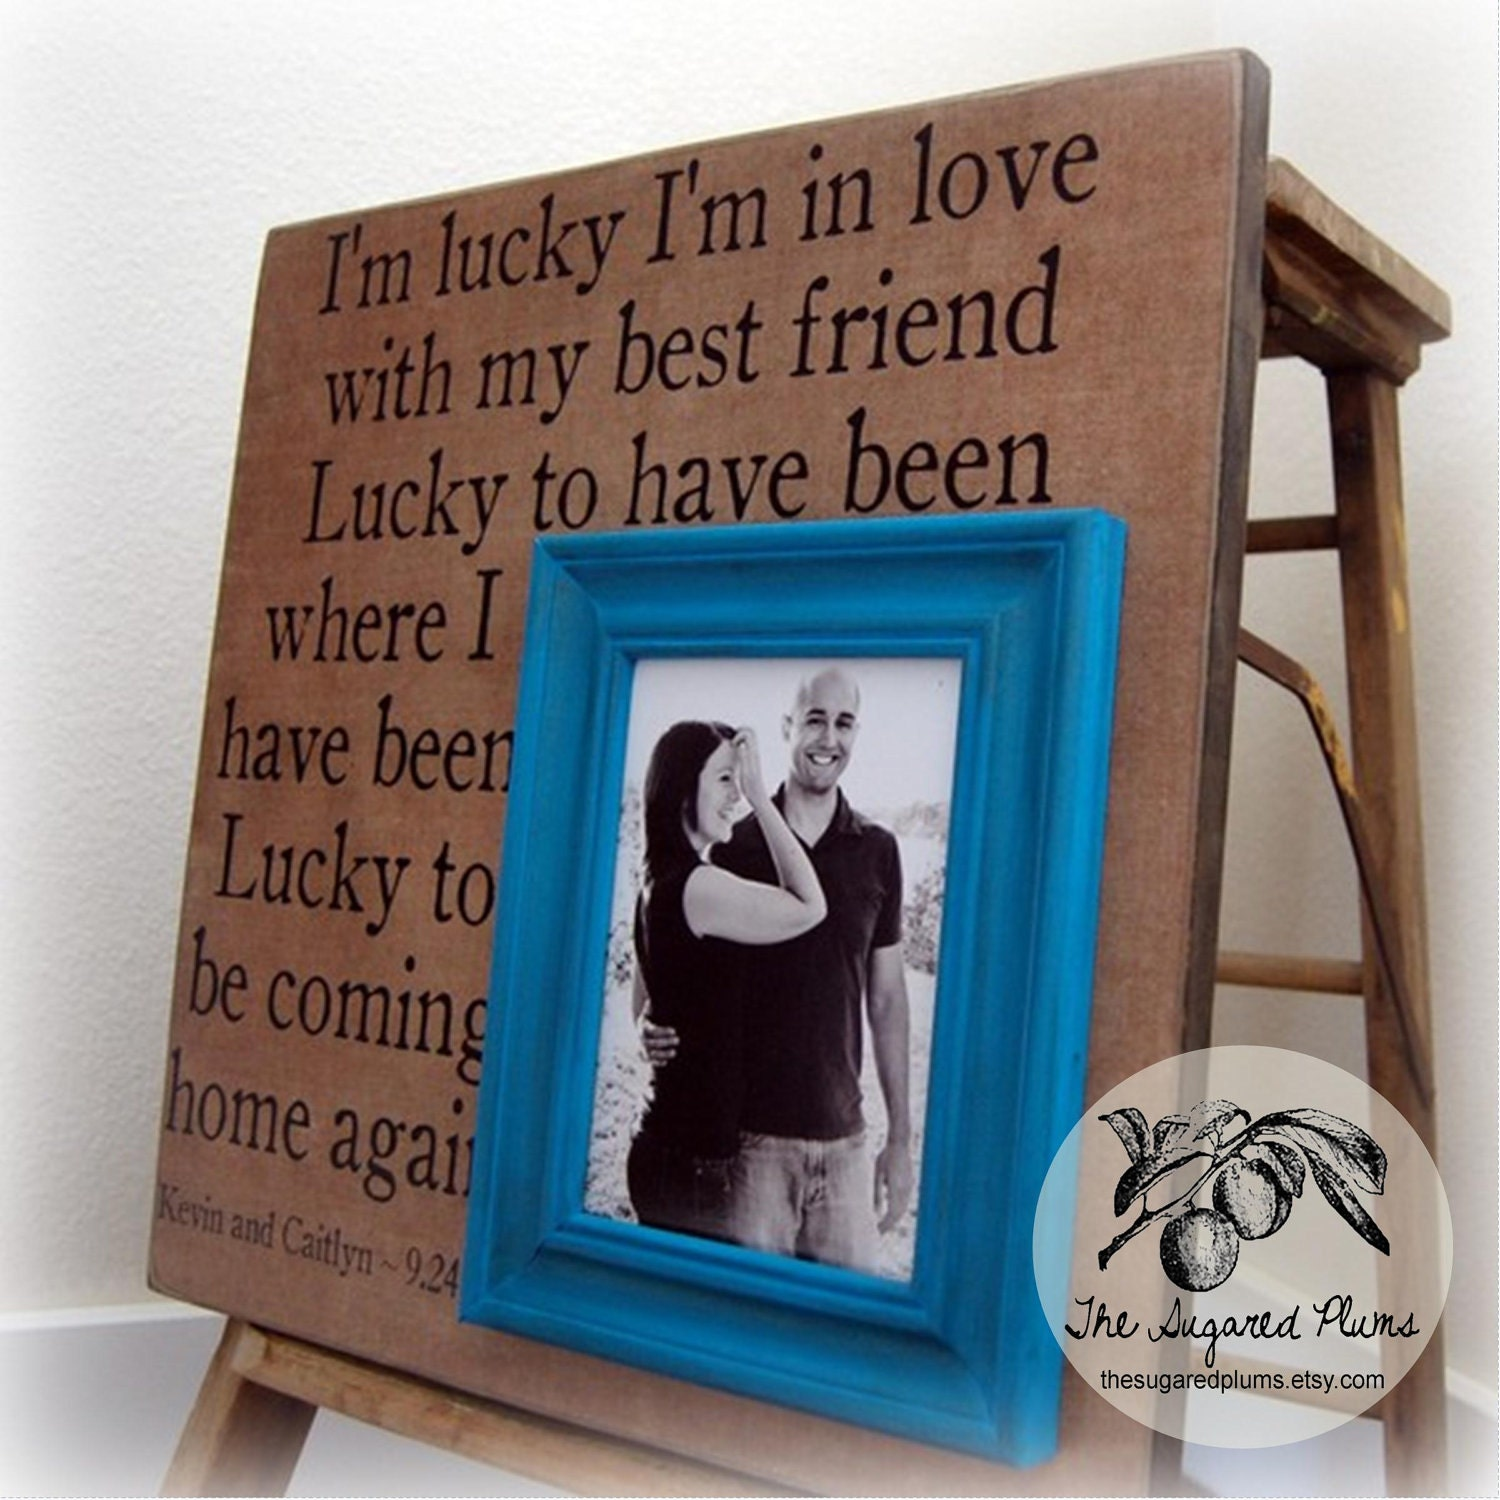 Wedding Gifts Picture Frames : Wedding Frame Personalized Wedding Gift 16x16 IM LUCKY